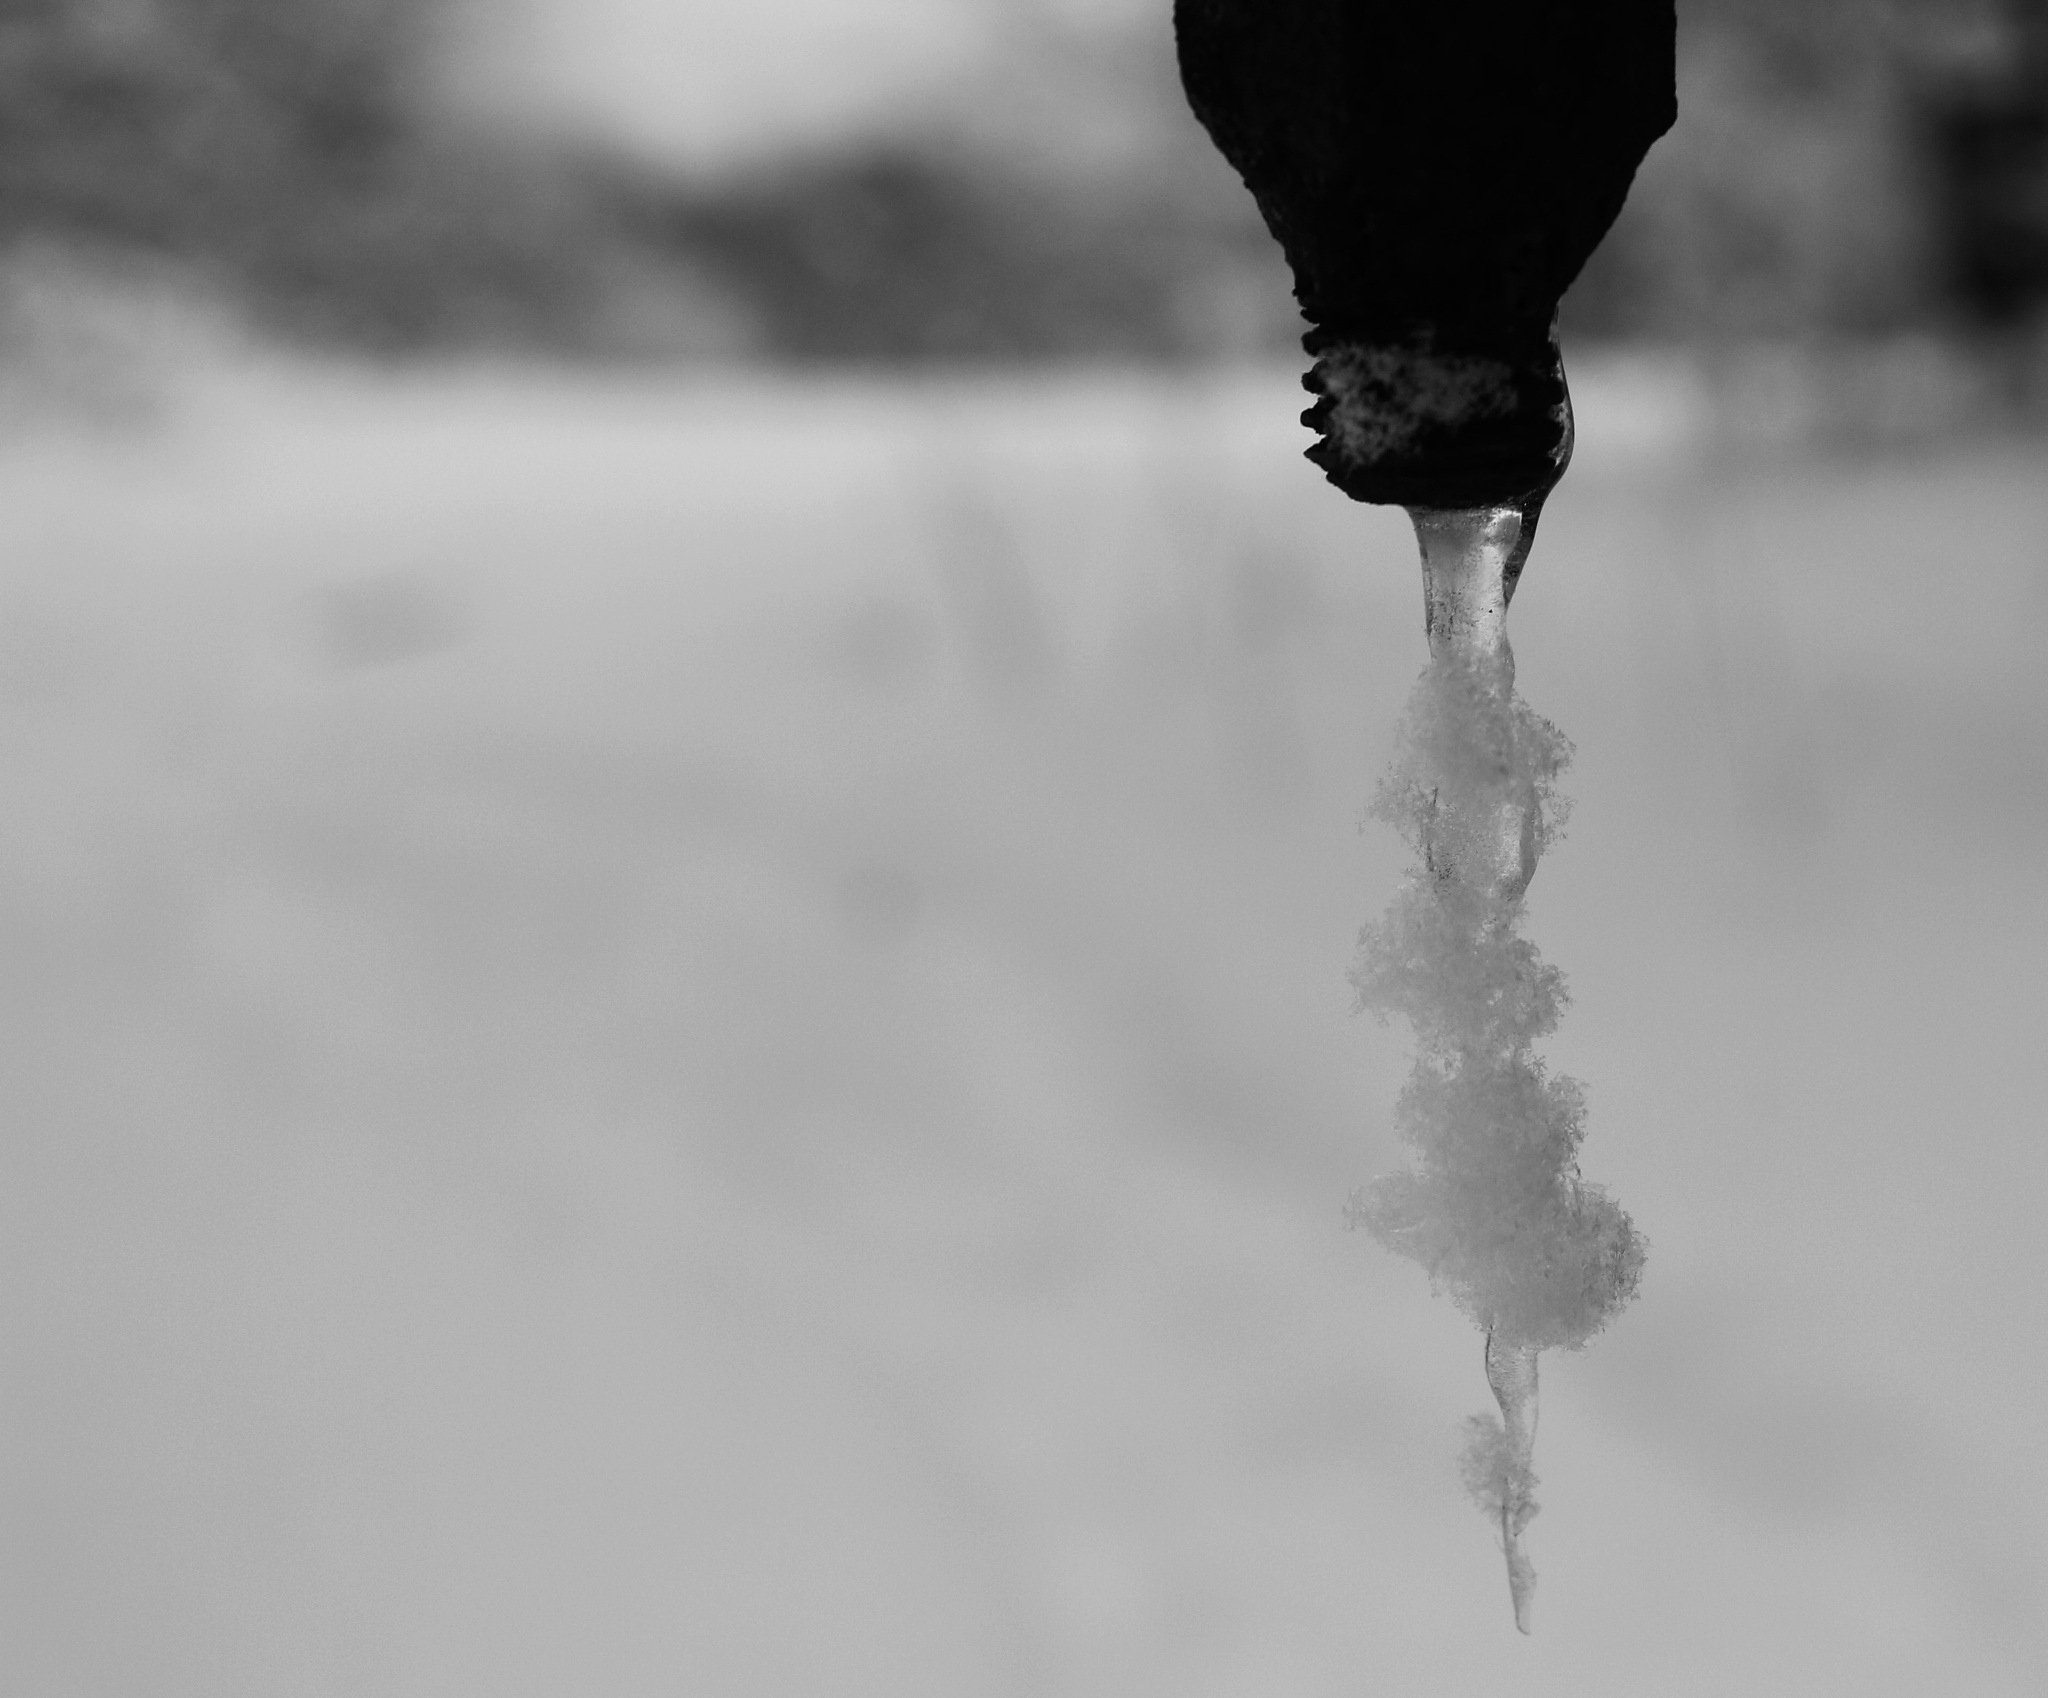 Snowy Icicle by Auggie23